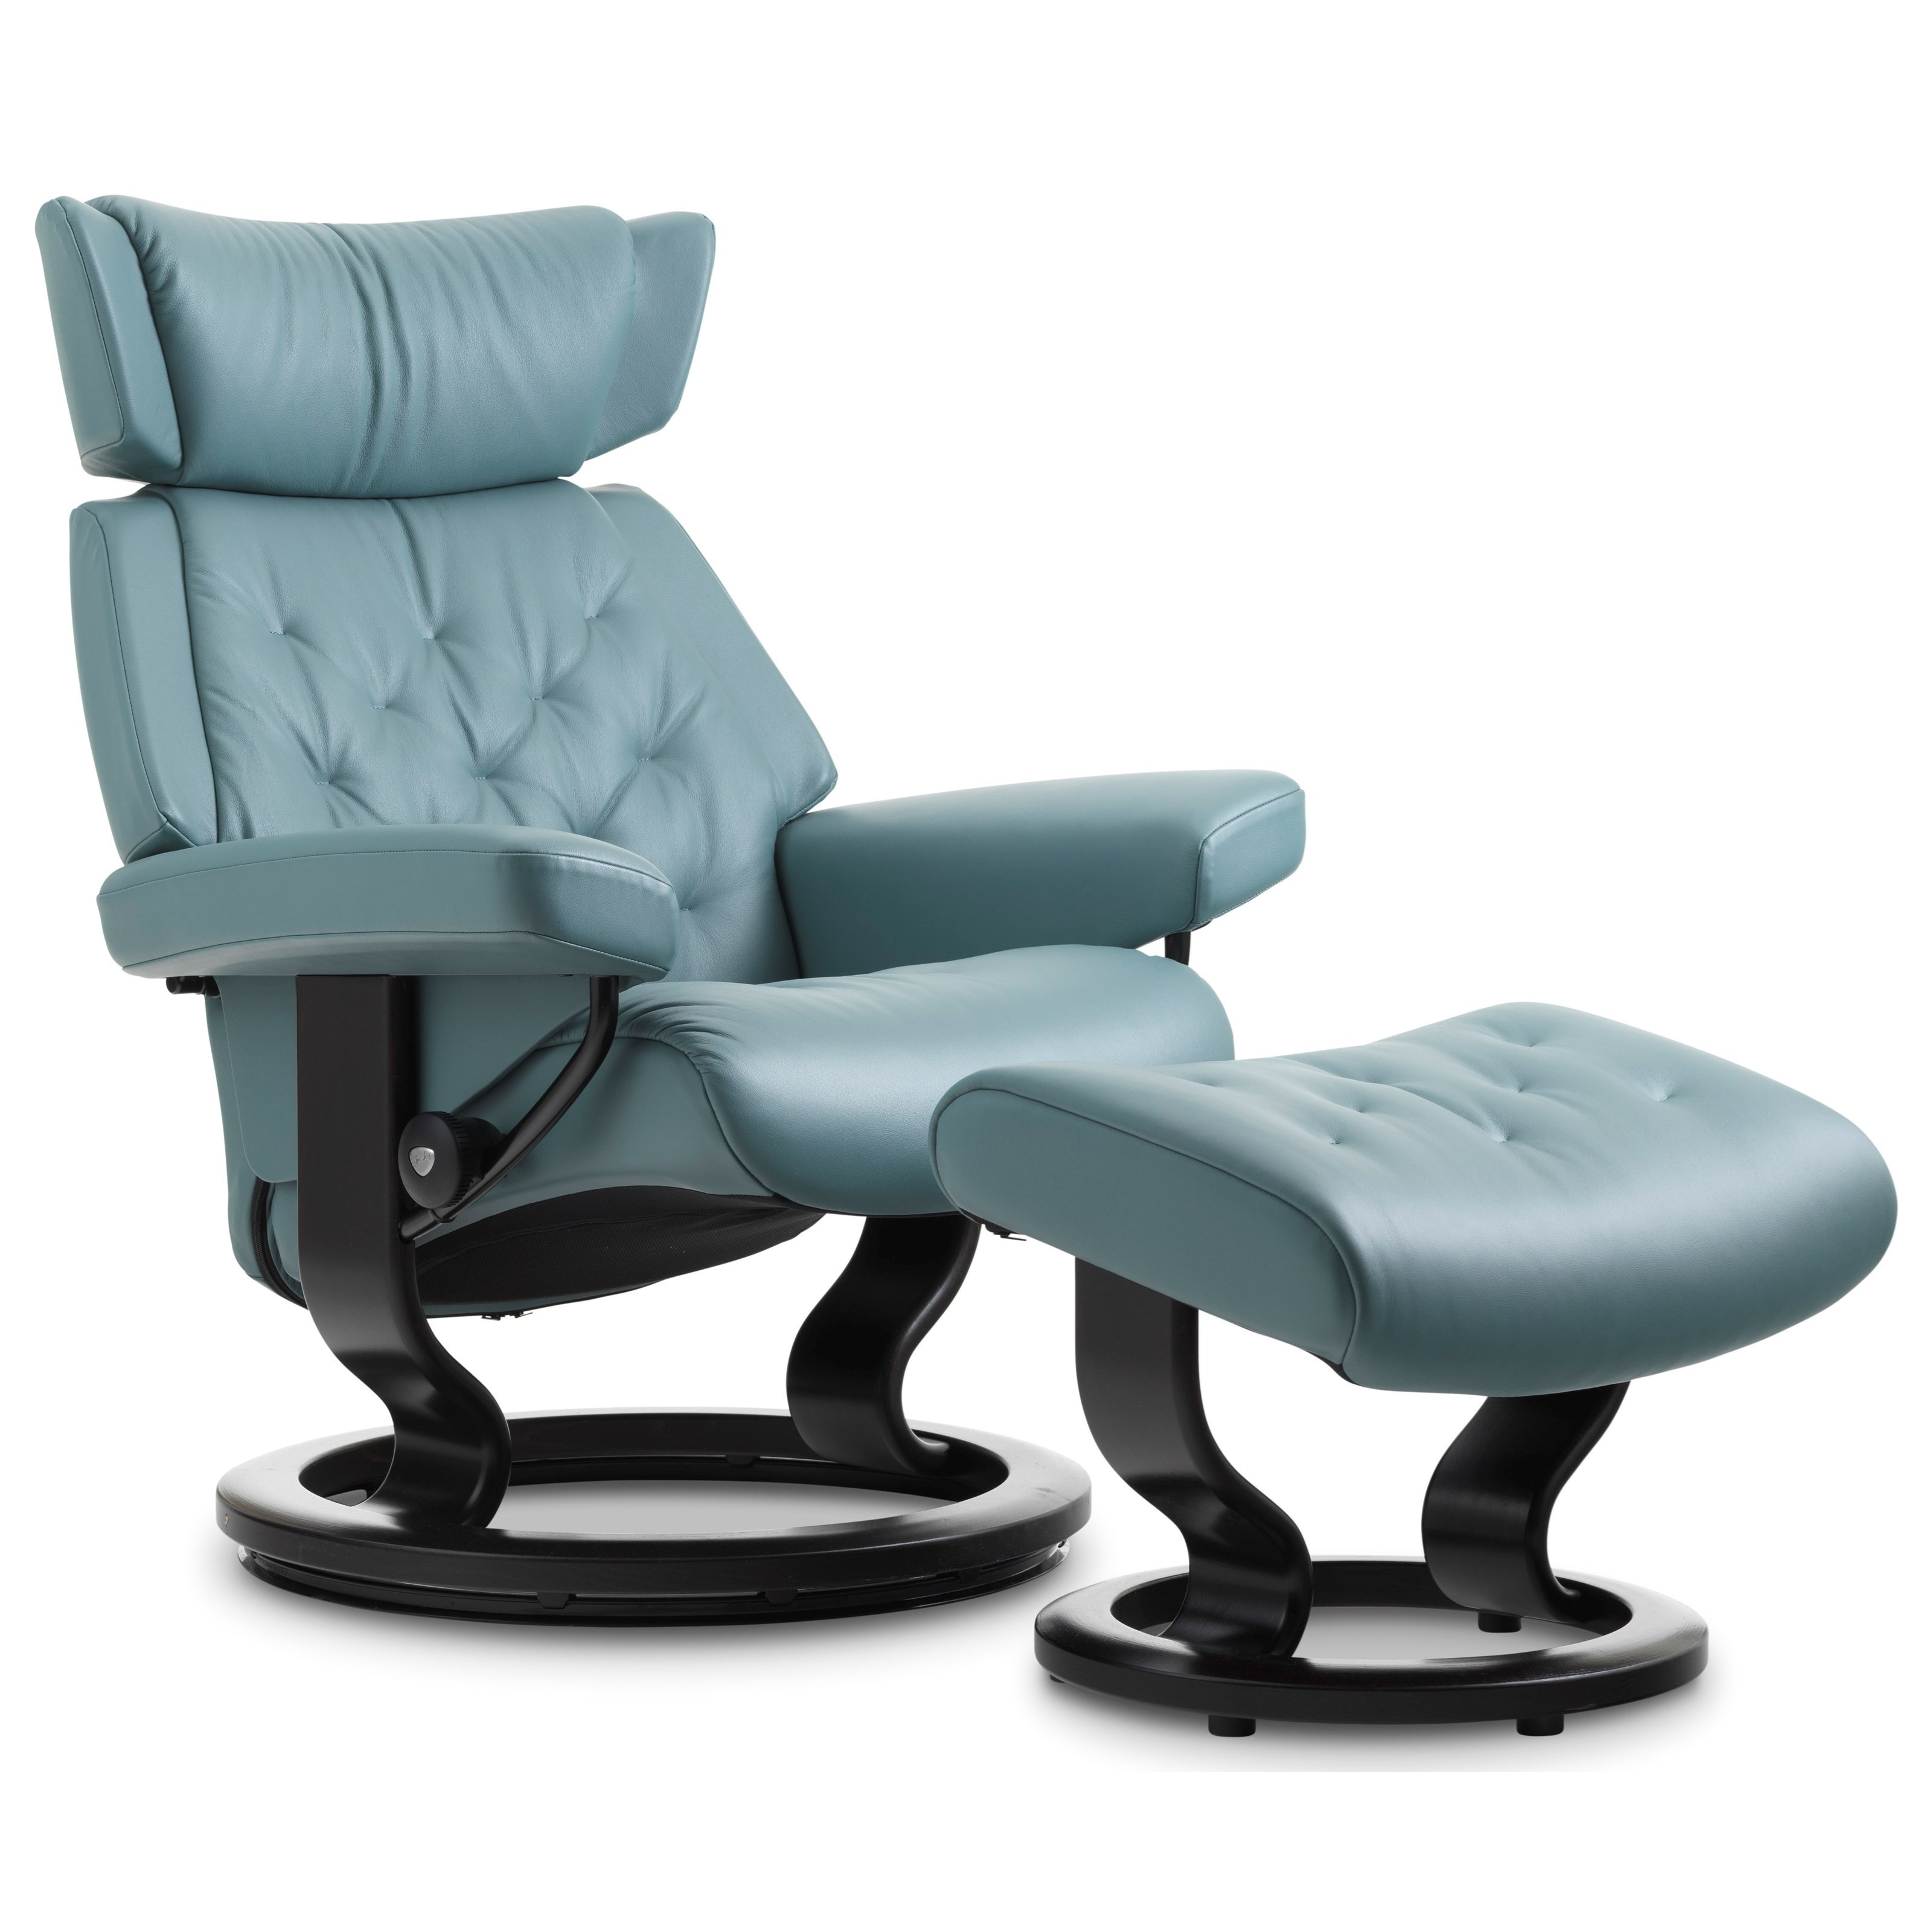 Skyline Medium Chair & Ottoman with Classic Base by Stressless at Jordan's Home Furnishings